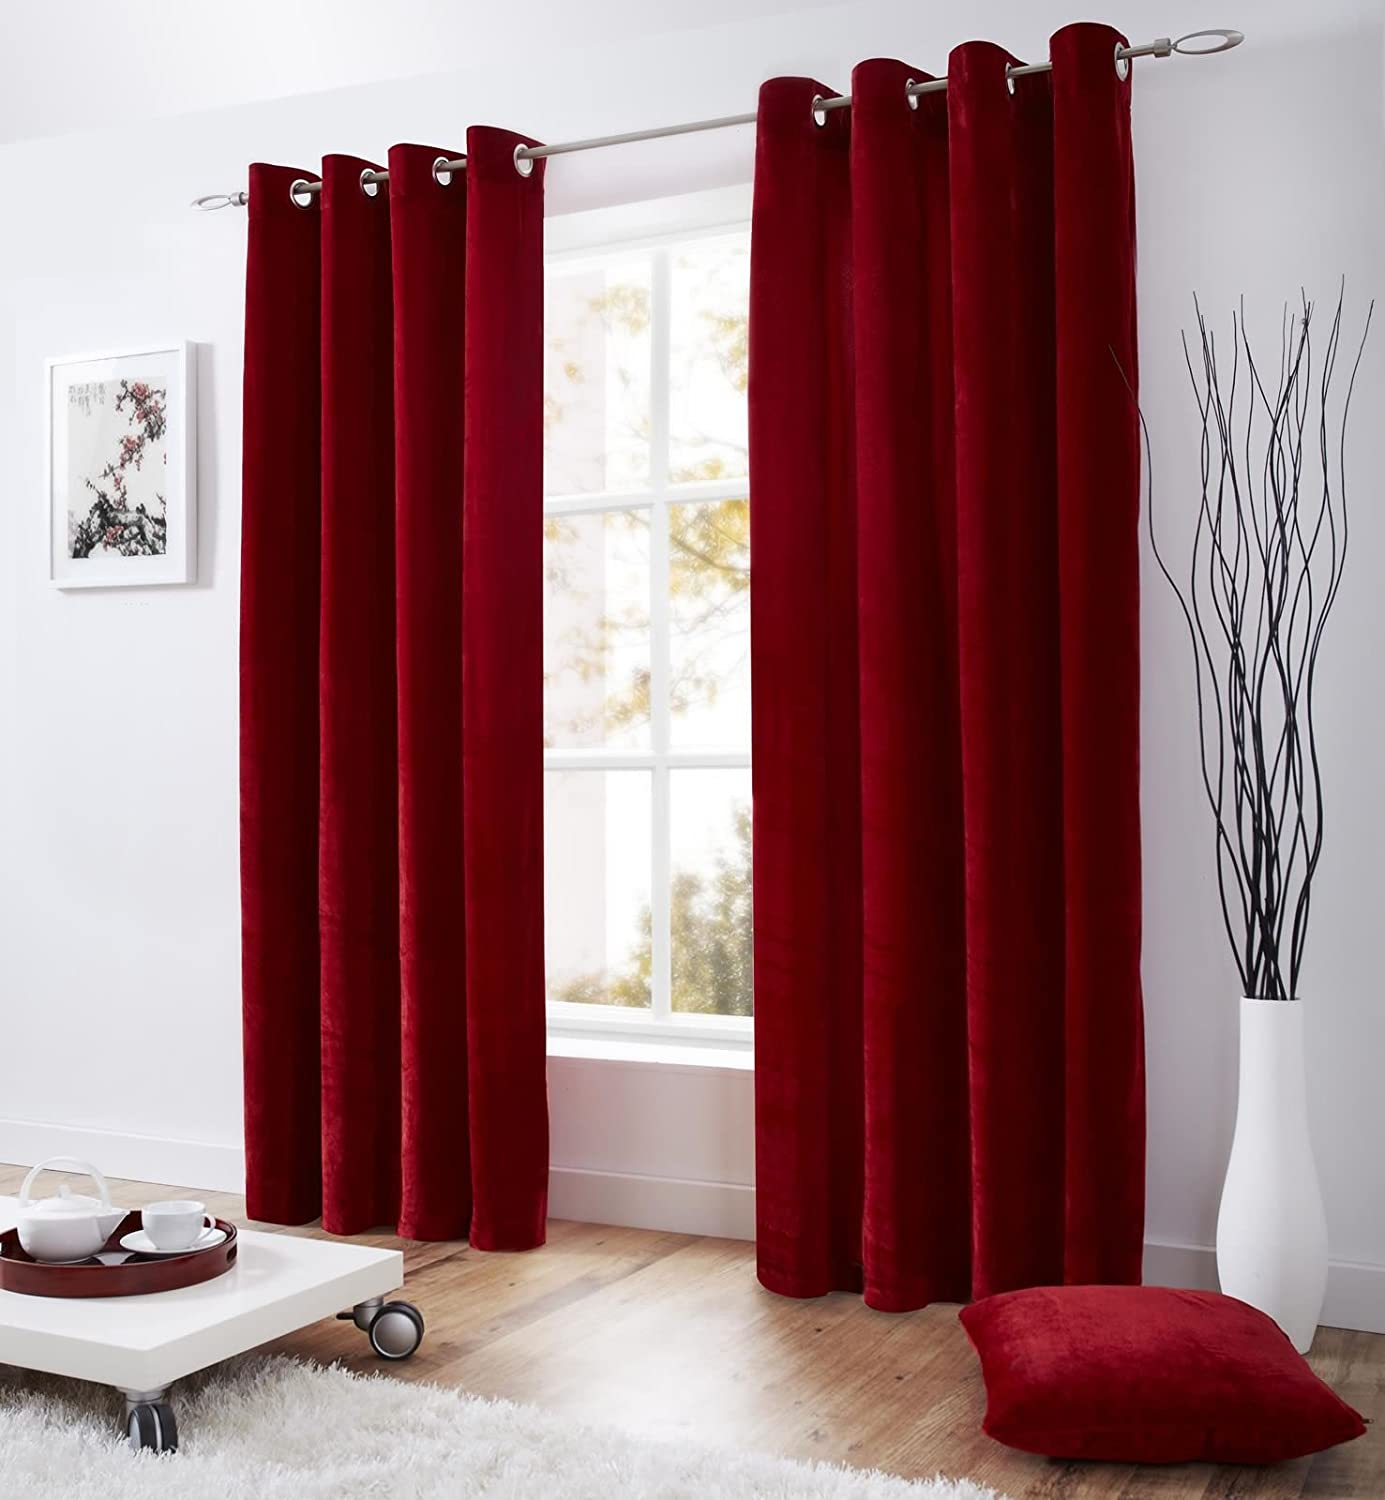 Red velvet window curtains - Ring Top Eyelet Lined Velvet Curtains 58 Wide X 90 Drop Red Amazon Co Uk Kitchen Home